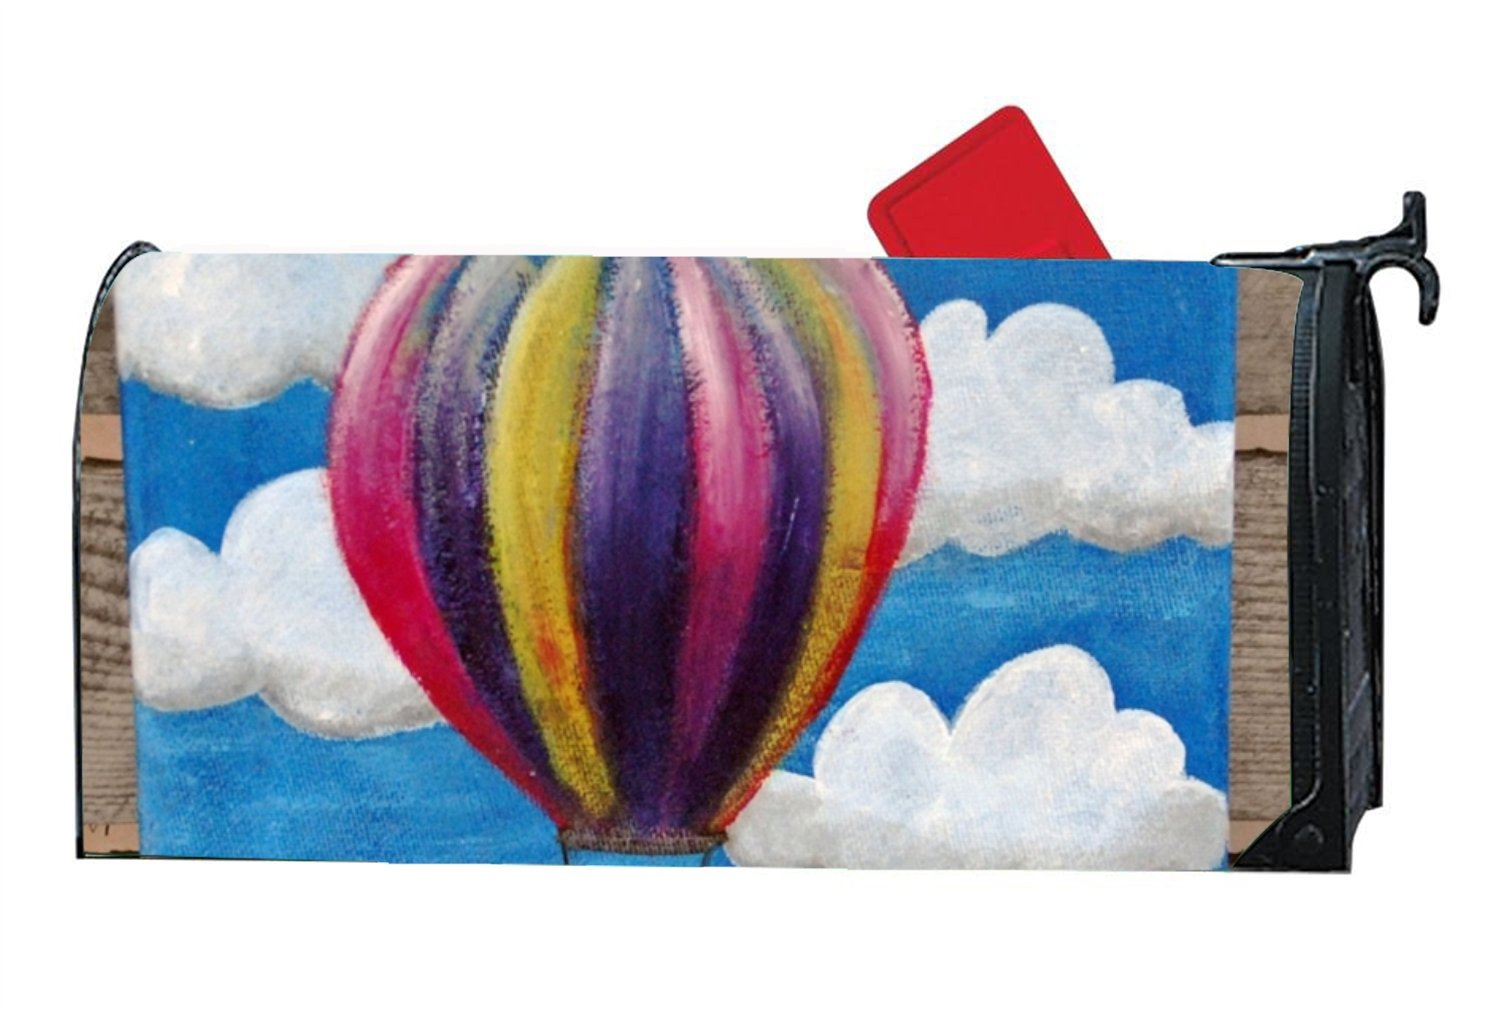 Mailbox Cover - Decorative Magnetic Mailbox Hot Air Balloon Design,Surrounds all 6.5'''' x 19'''' standard or traditional size mailboxes